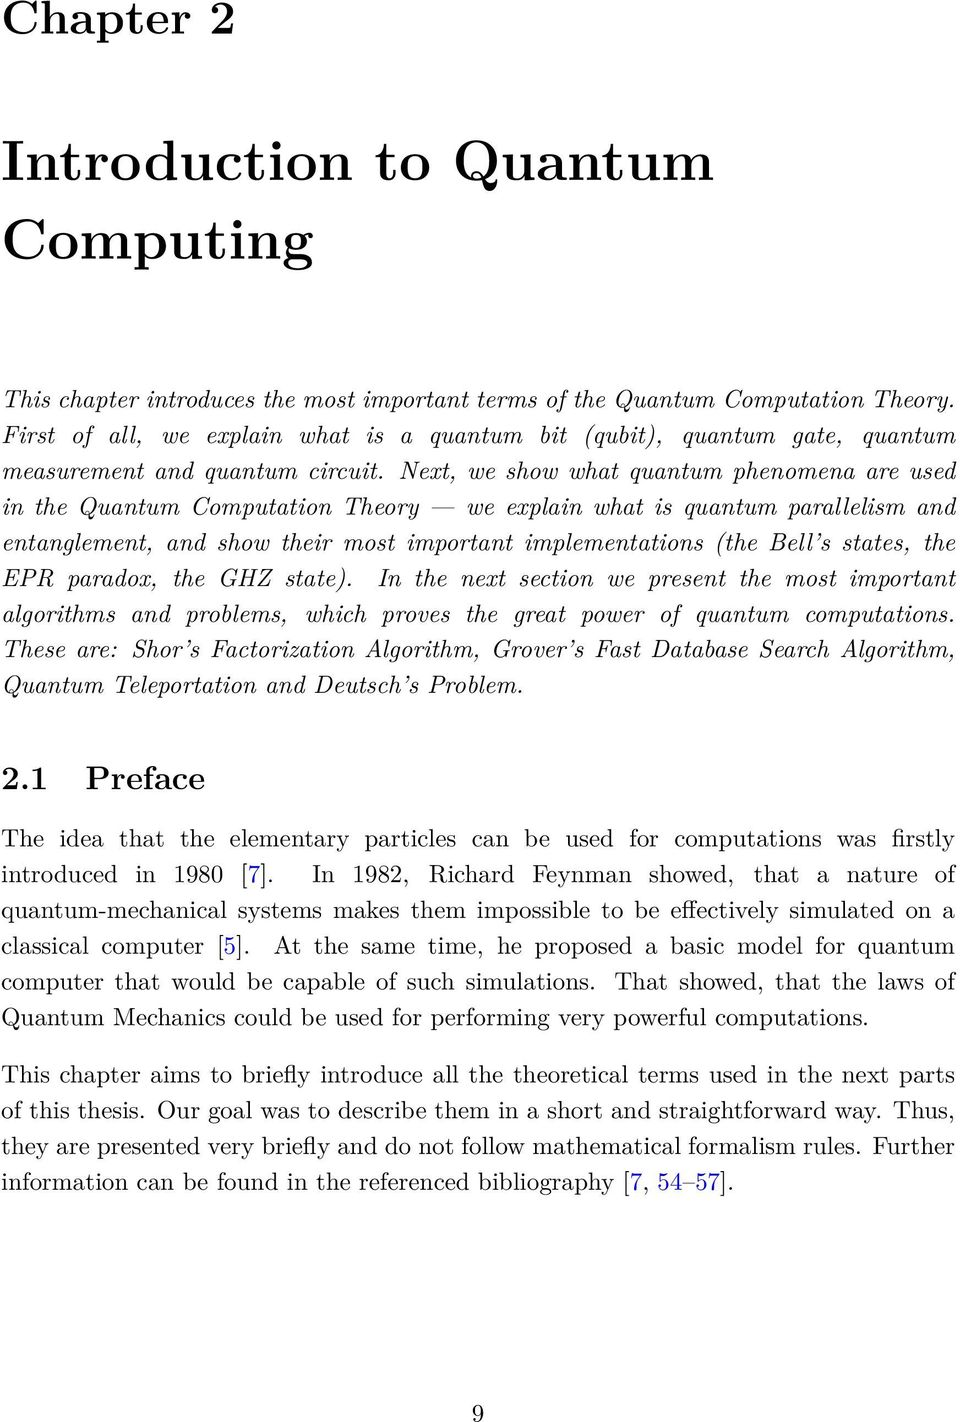 Next, we show what quantum phenomena are used in the Quantum Computation Theory we explain what is quantum parallelism and entanglement, and show their most important implementations (the Bell s